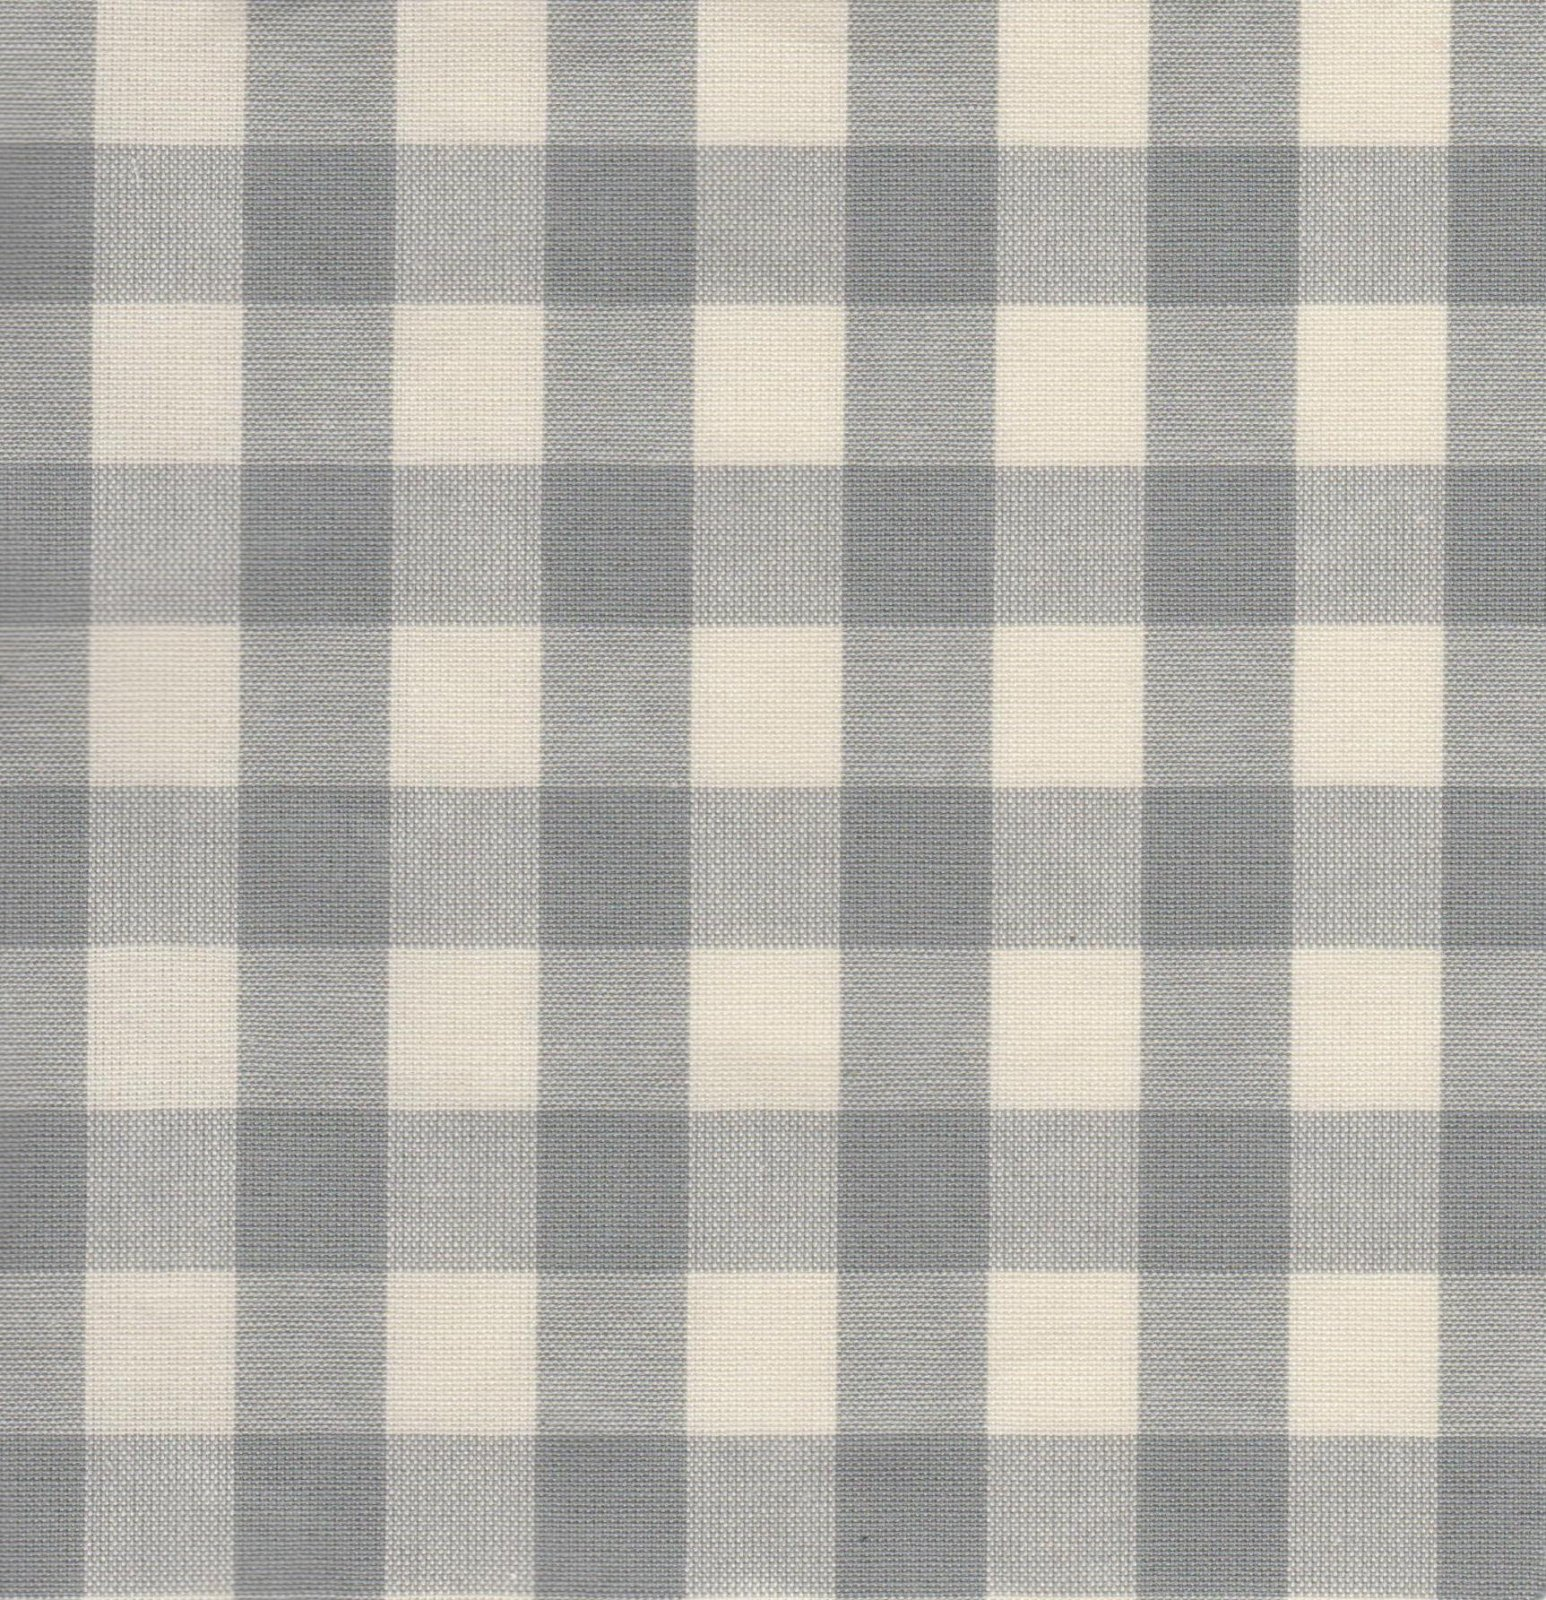 Foust-Cabin Check Premium Homespun 902 Grey